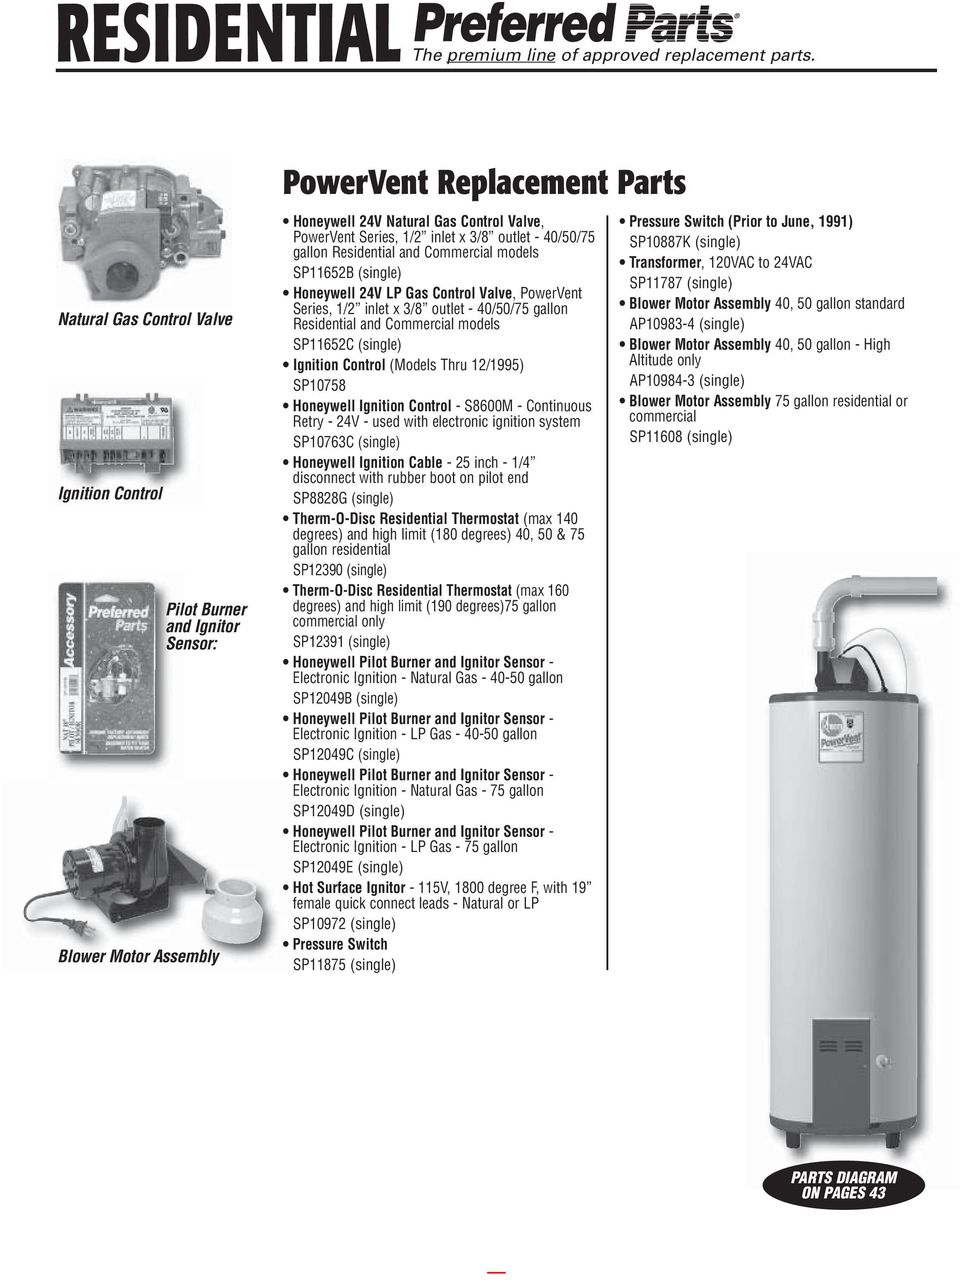 Rheem Water Heater Parts Guide Pdf Honda Pilot Replacement Motor Repalcement And Diagram 3 8 Outlet 40 50 75 Gallon Residential Commercial Models Sp11652b The Premium Line Of Approved